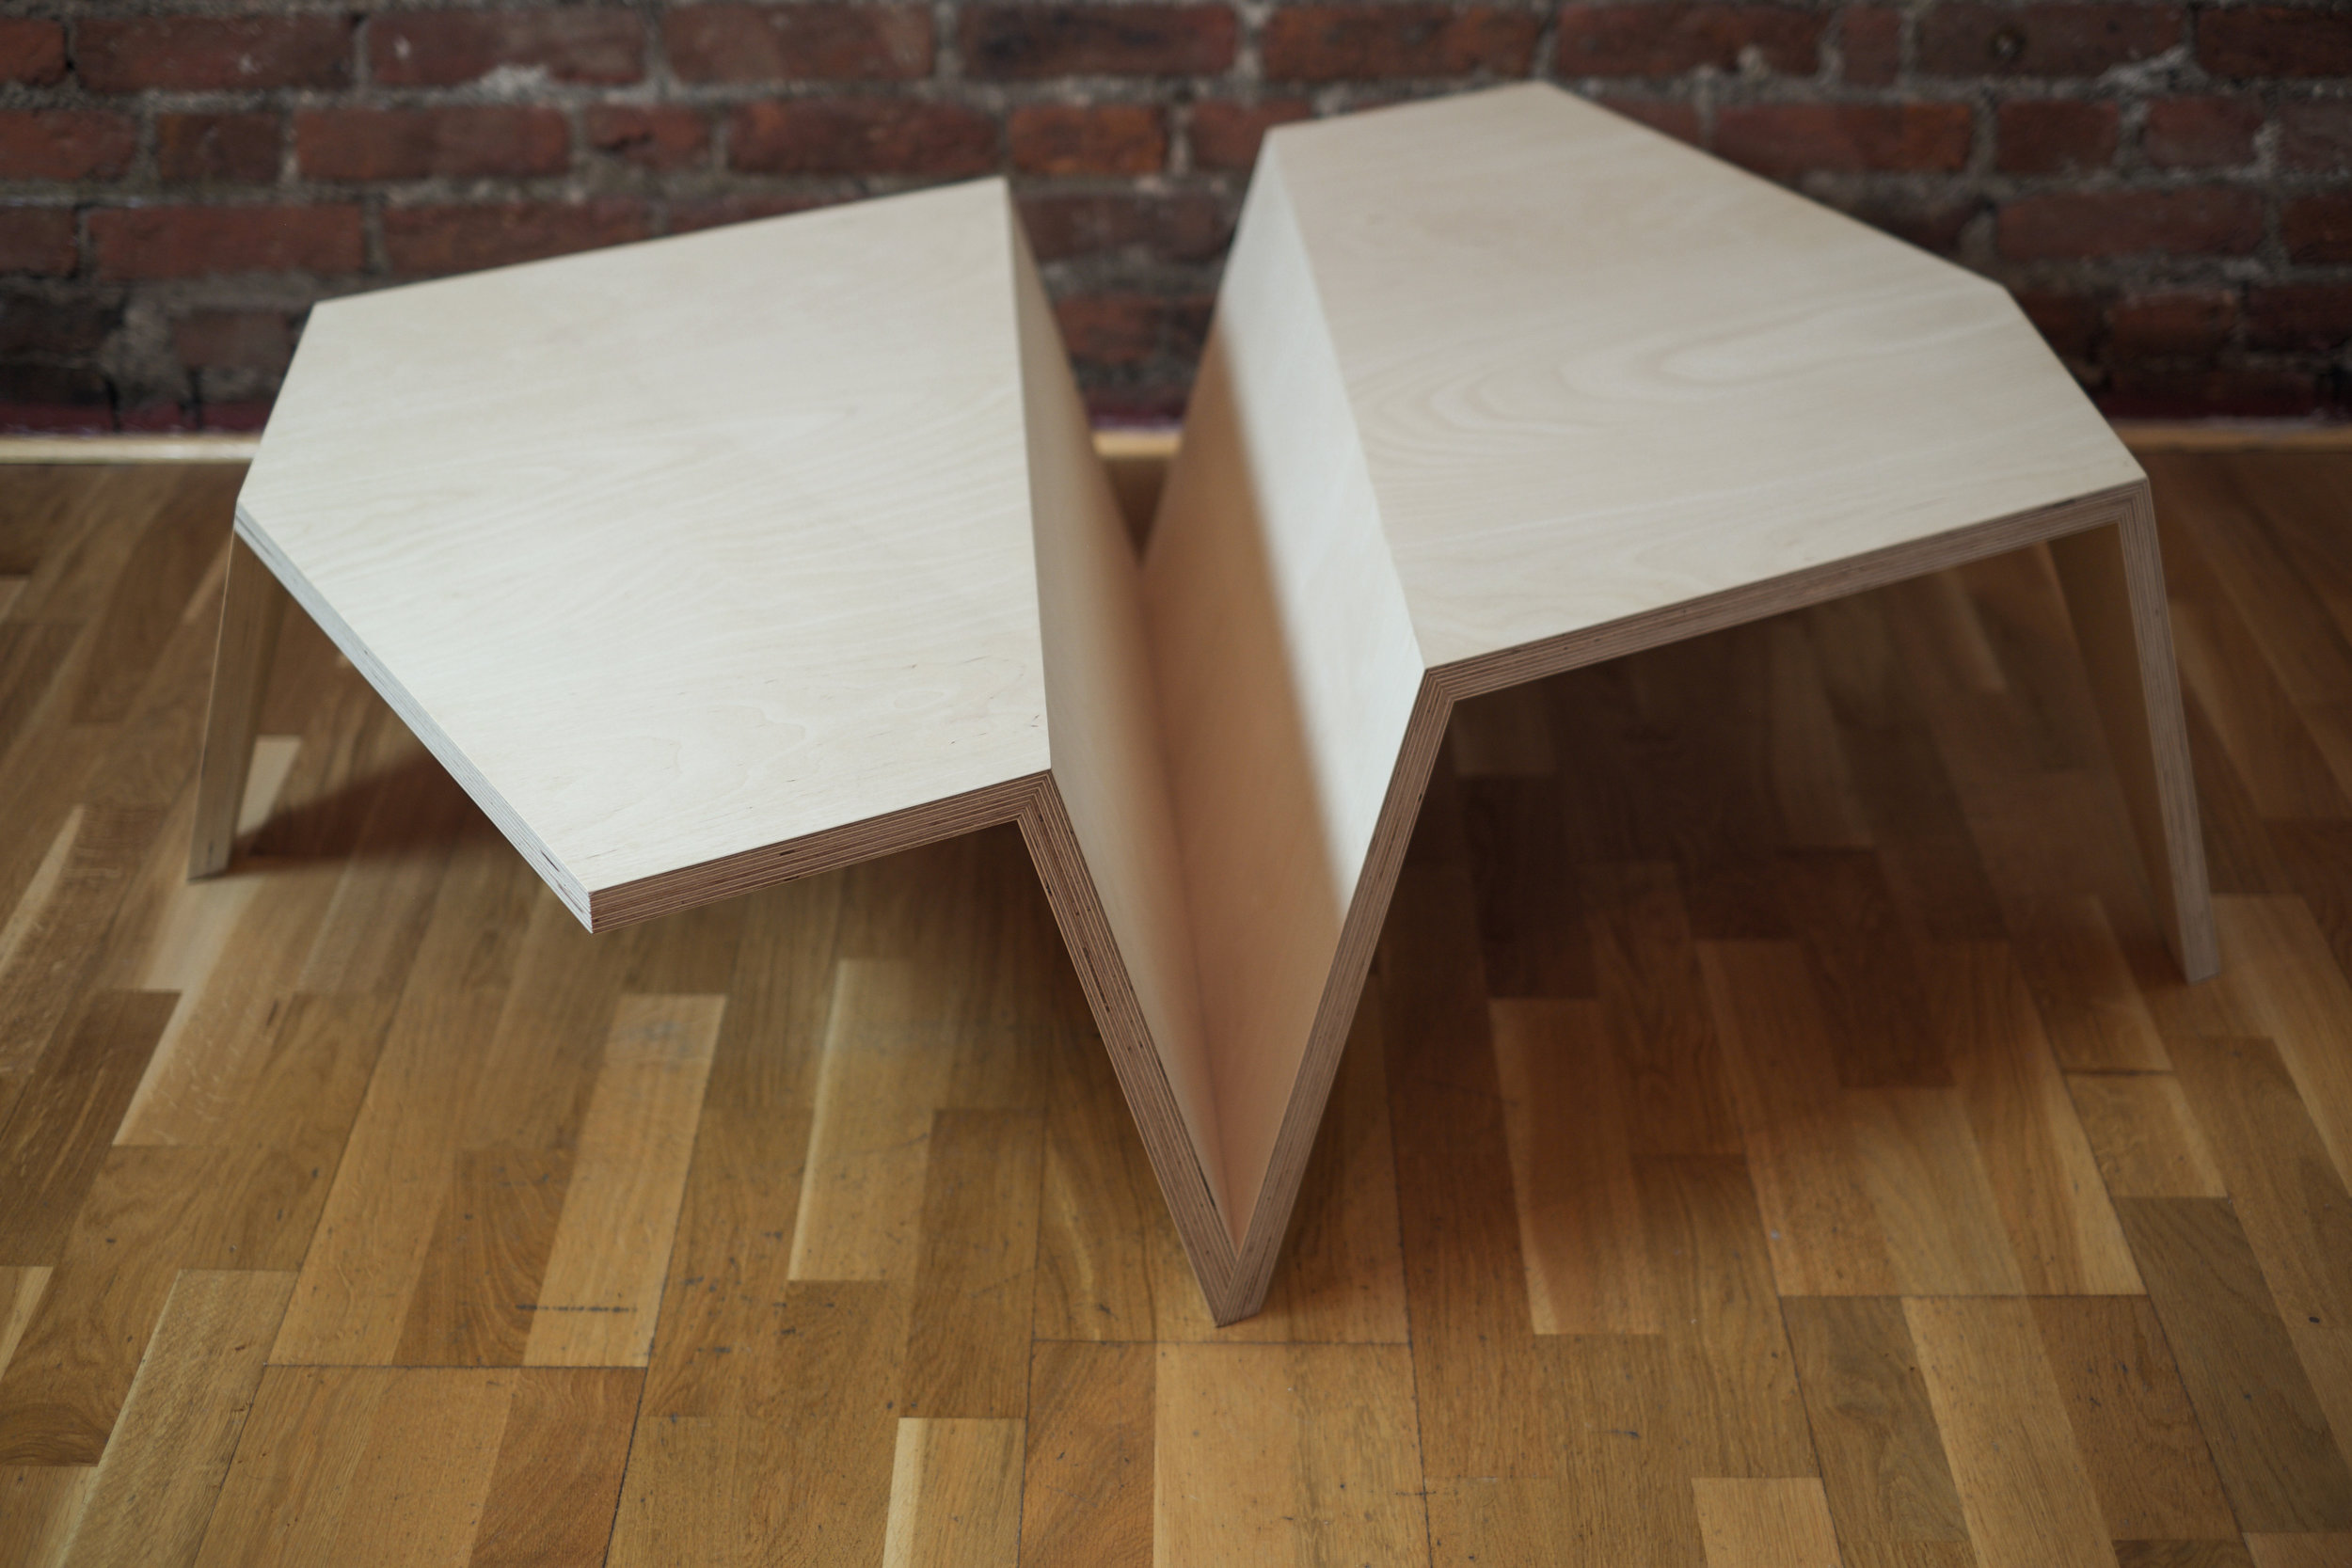 The Origami Low Coffee Table in Beech Ply - detailing the 'V' storage section